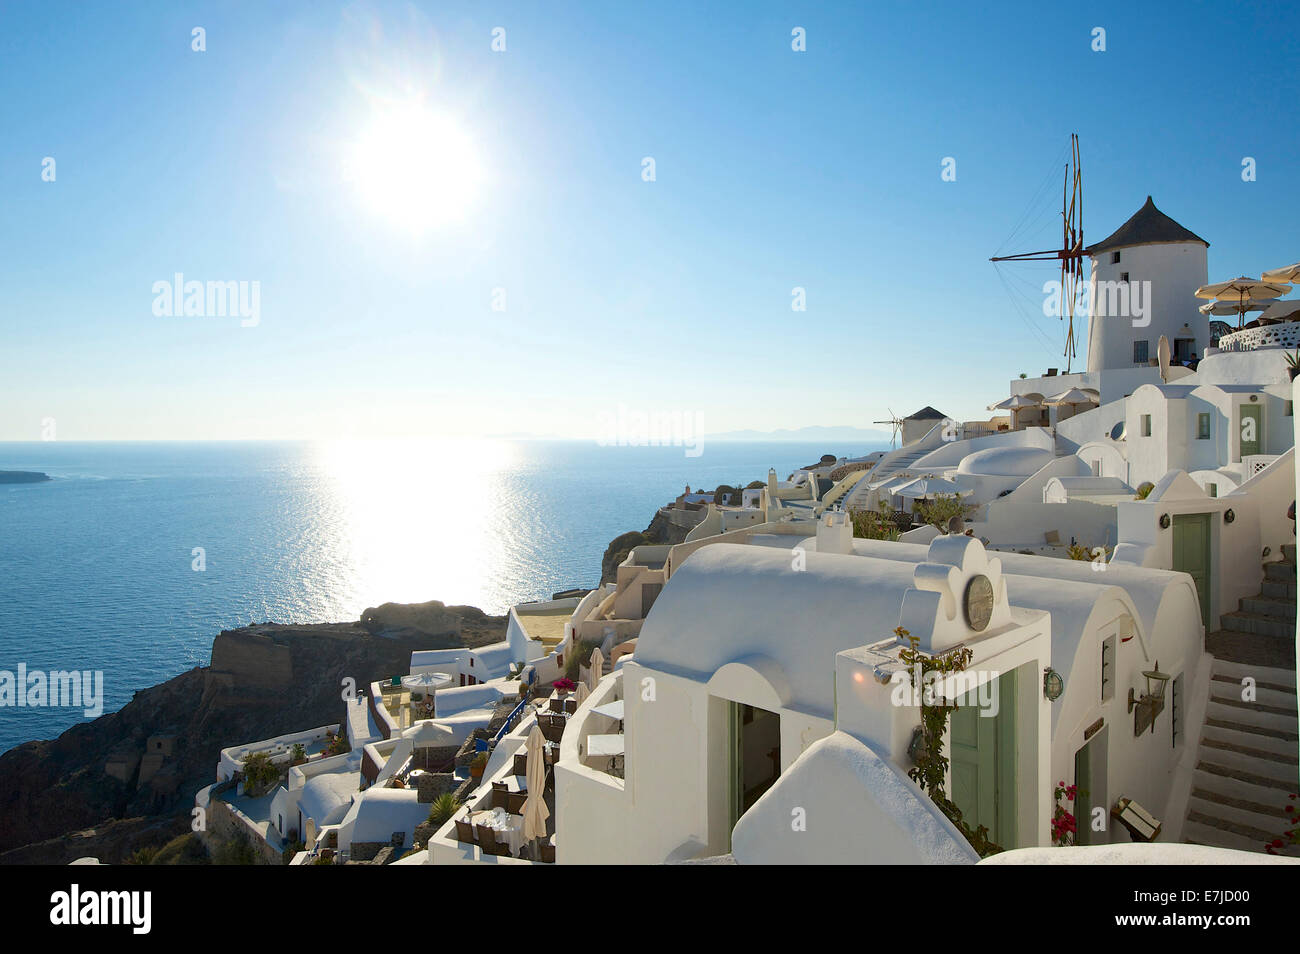 Greece, Europe, Cyclades, island, isle, islands, Greek, outside, Mediterranean Sea, day, nobody, Santorin, Santorini, - Stock Image